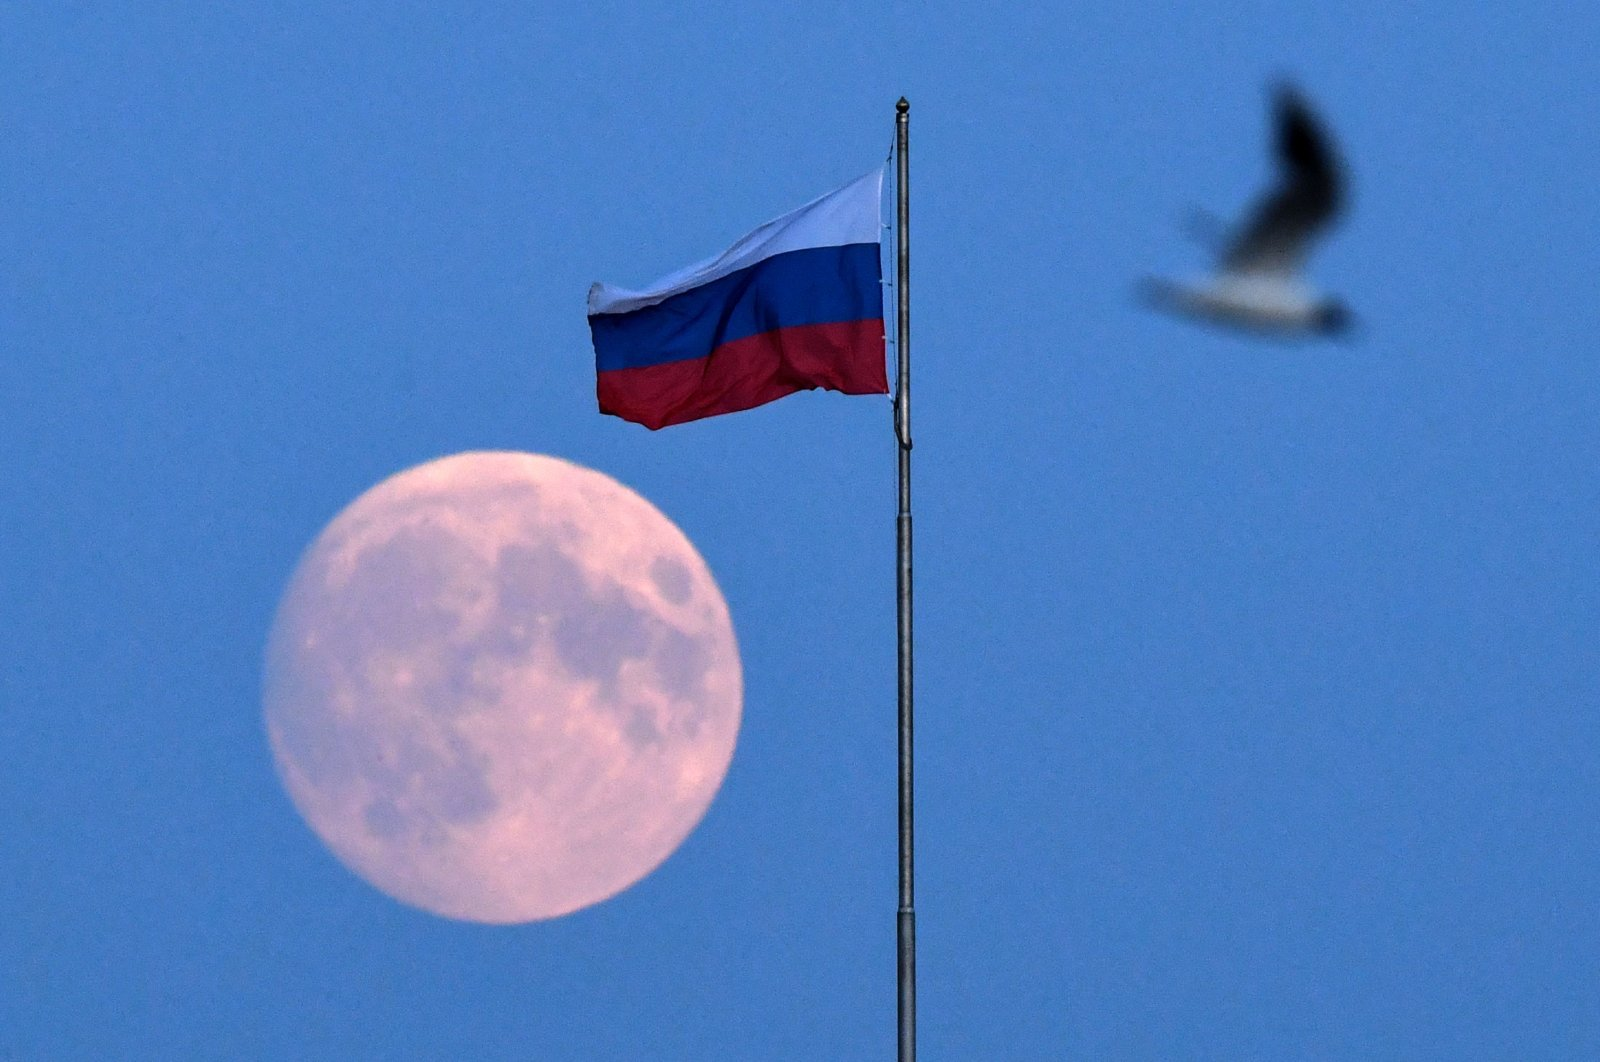 The full moon is photographed behind the Russian national flag in downtown Saint Petersburg, Russia, on June 23, 2021. (AFP Photo)